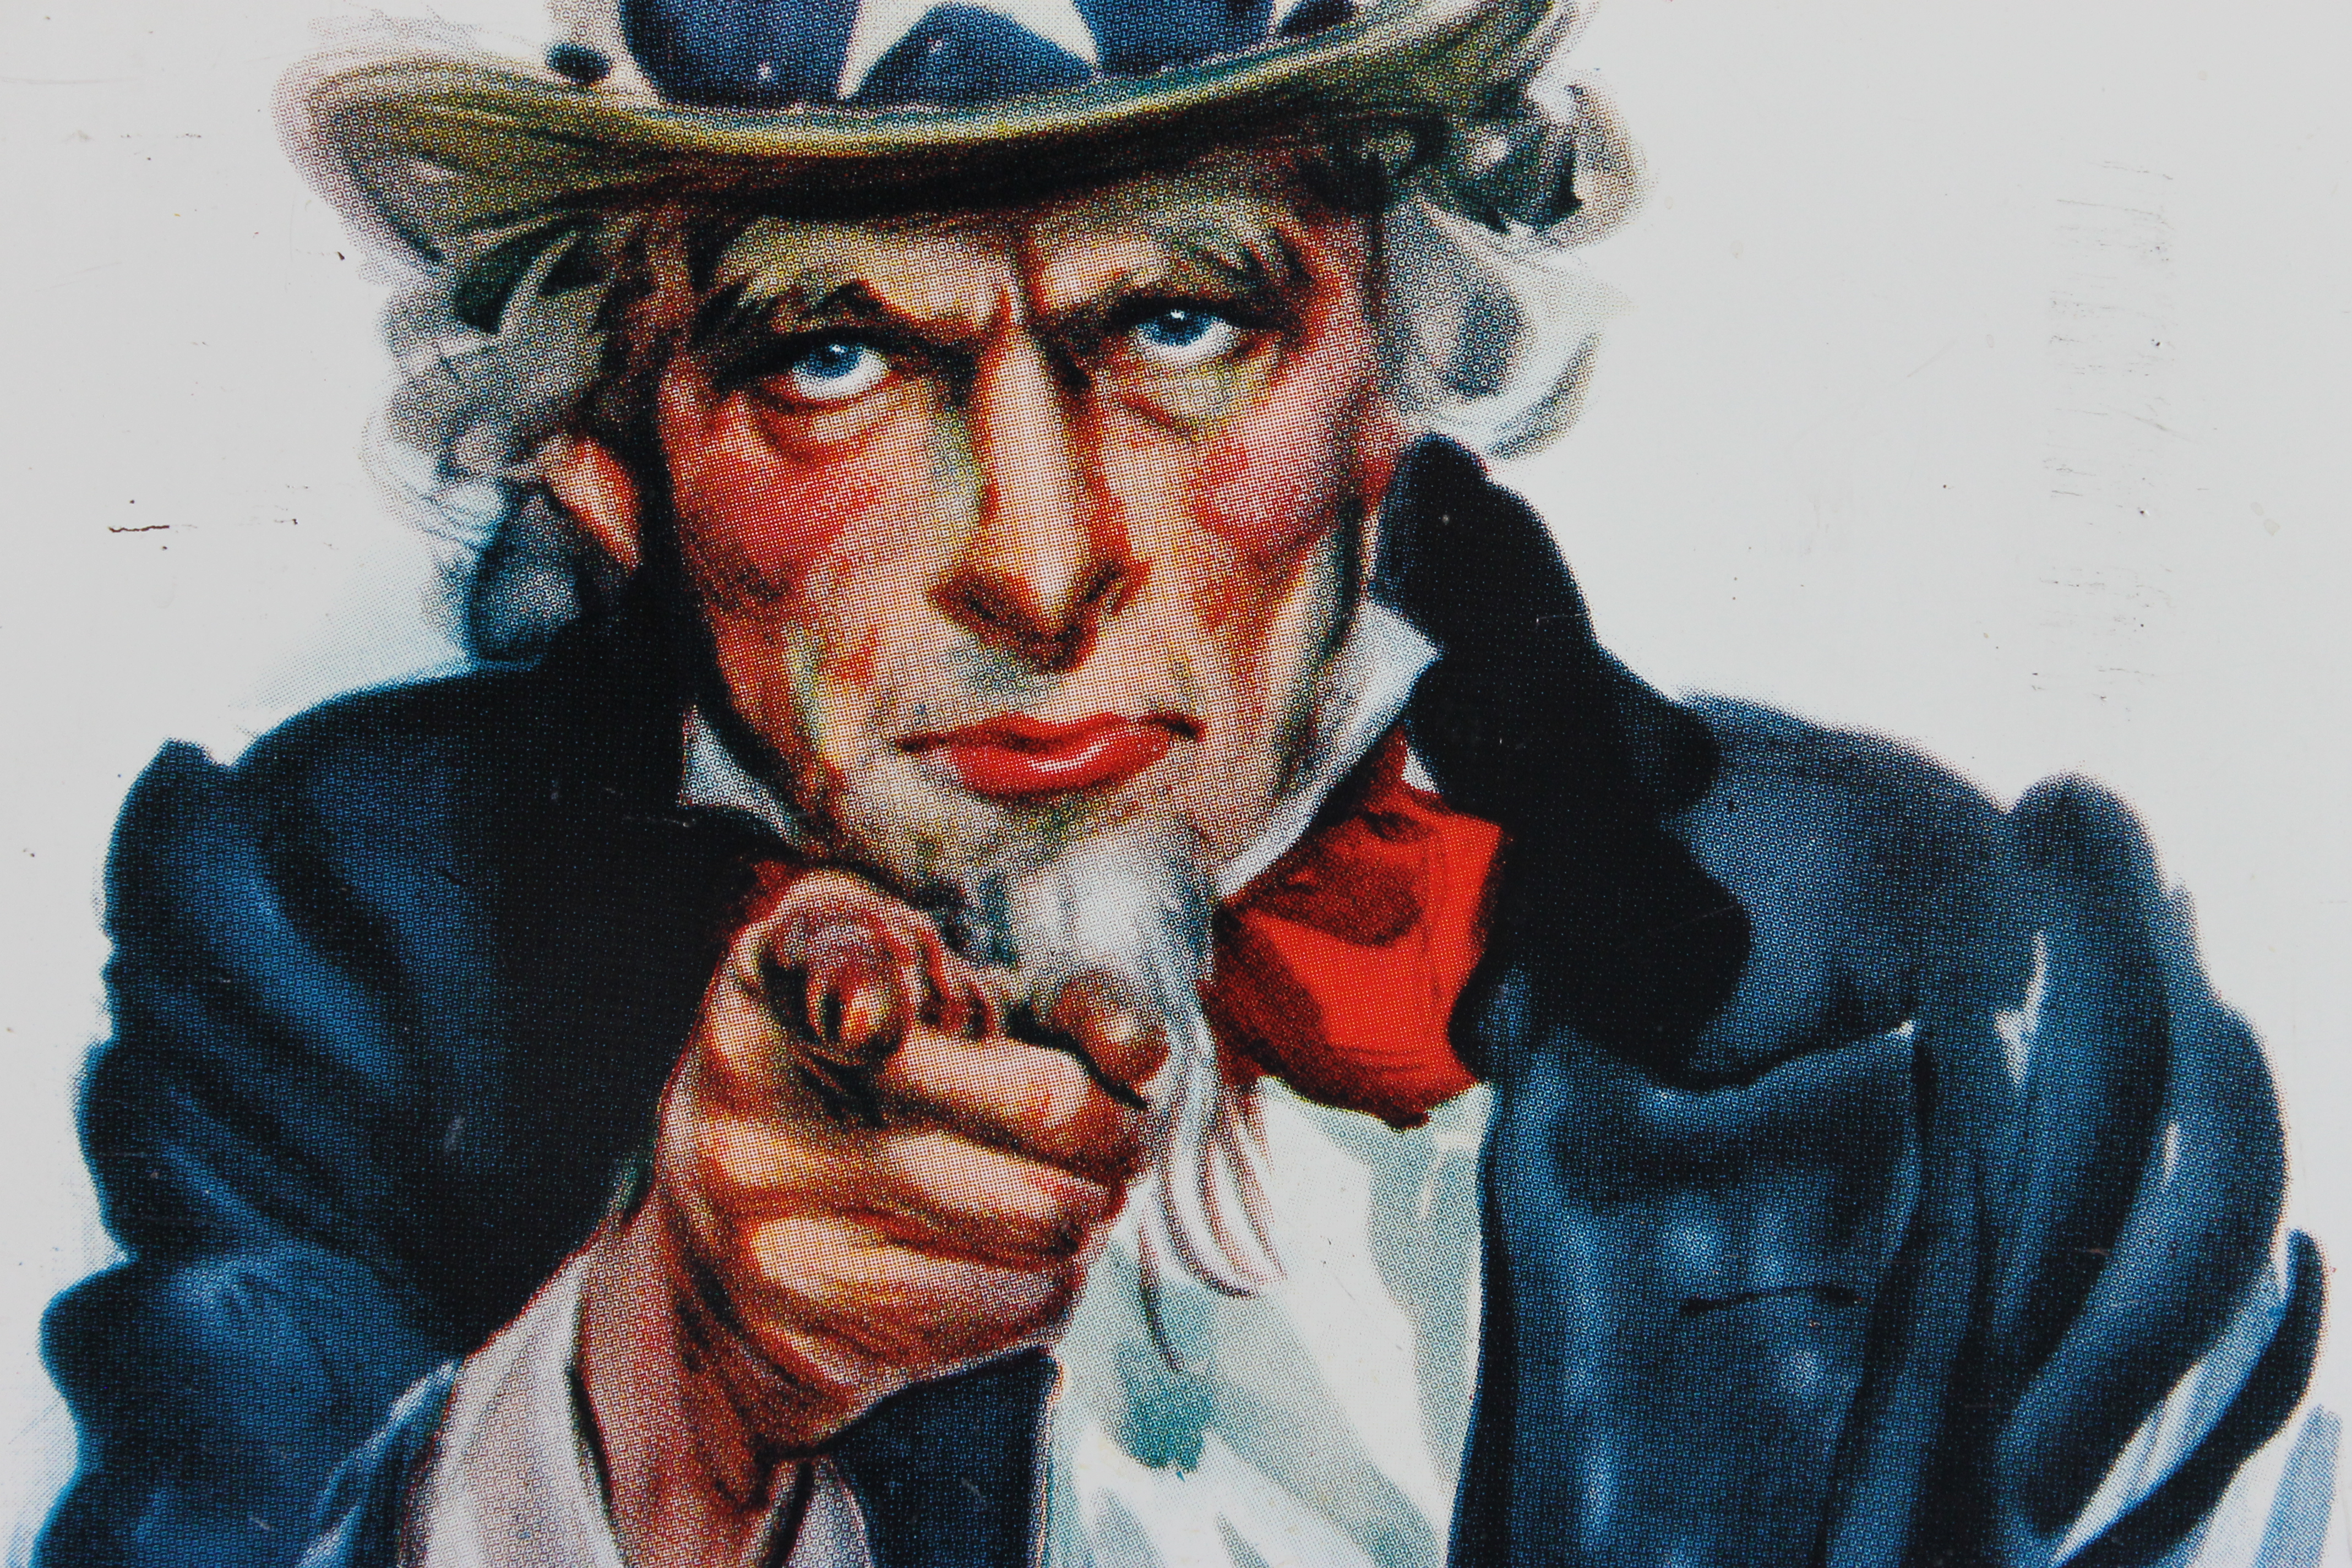 Uncle Sam will help your business grow